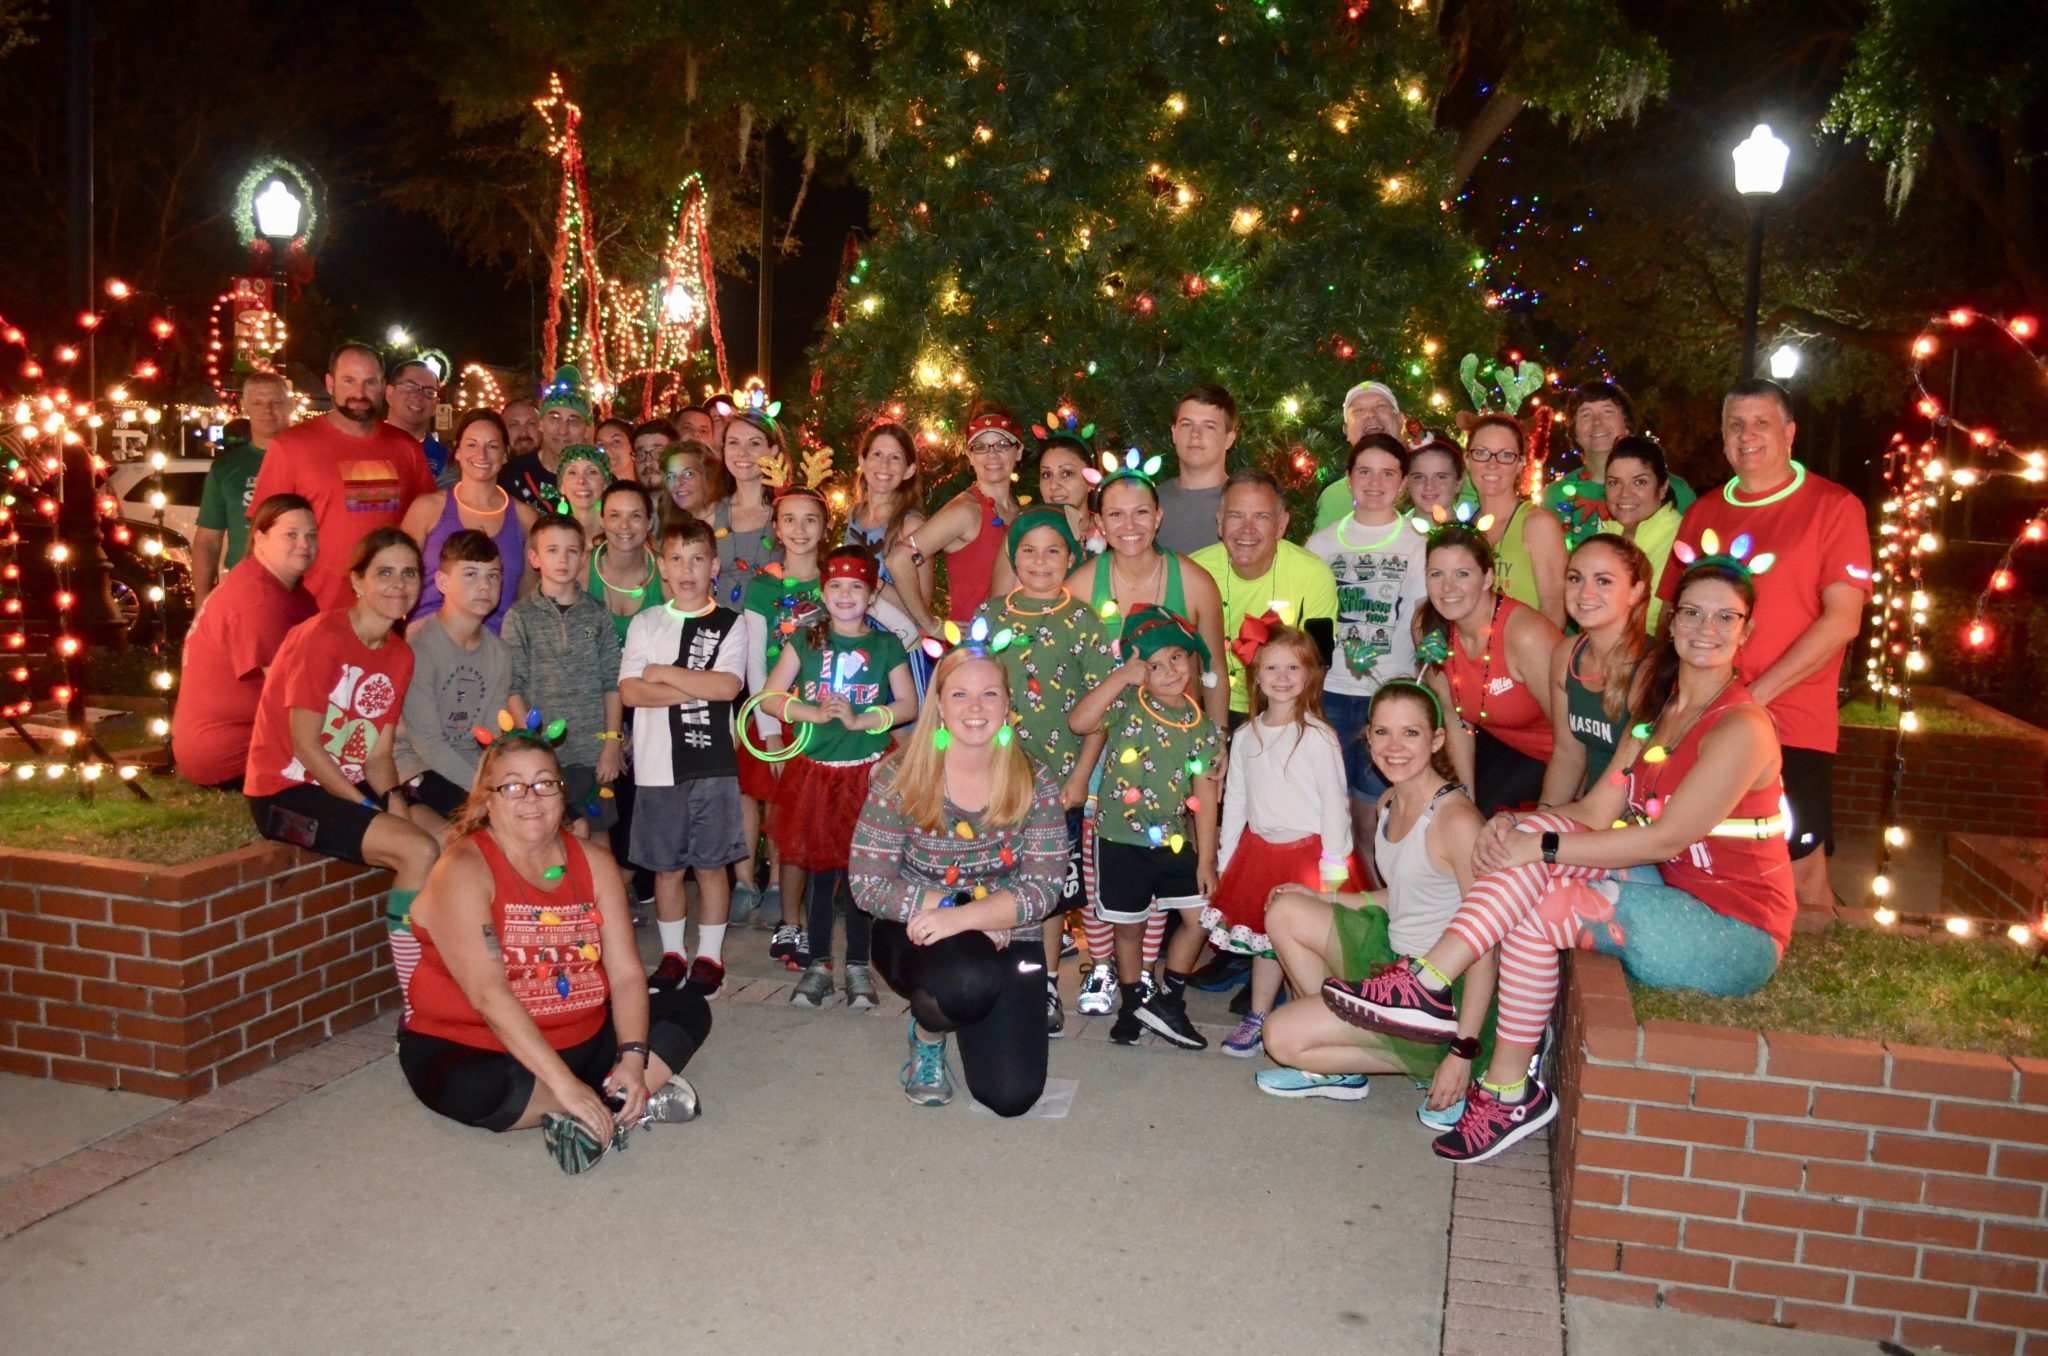 Plant City Christmas Parade 2020 Year in Photos: December 2019 | Plant City Observer